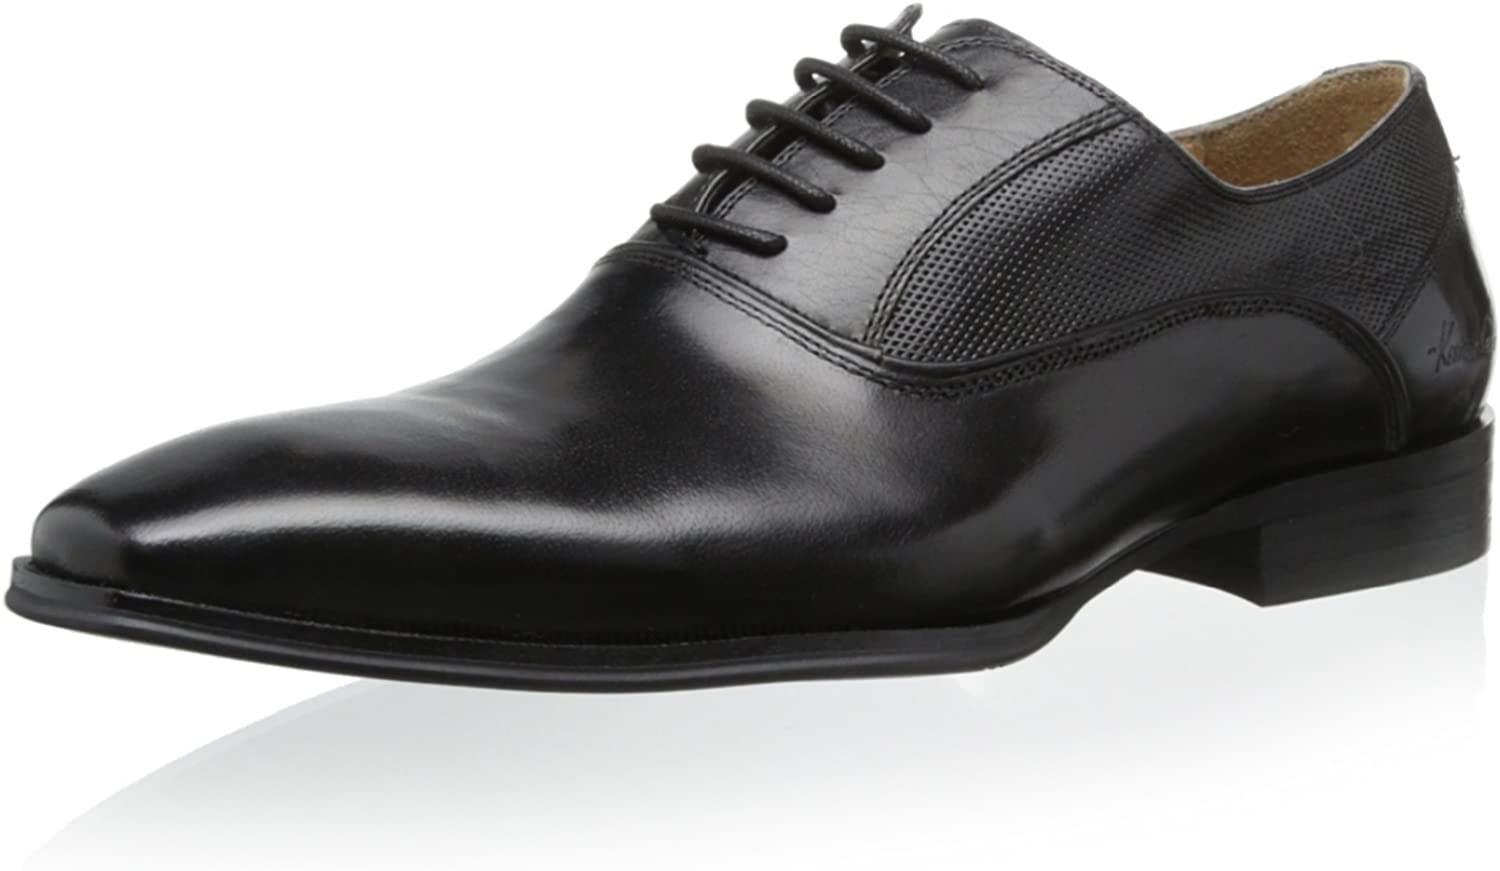 Kenneth Cole New York Men's Dress Who Le Dress Oxford Shoes